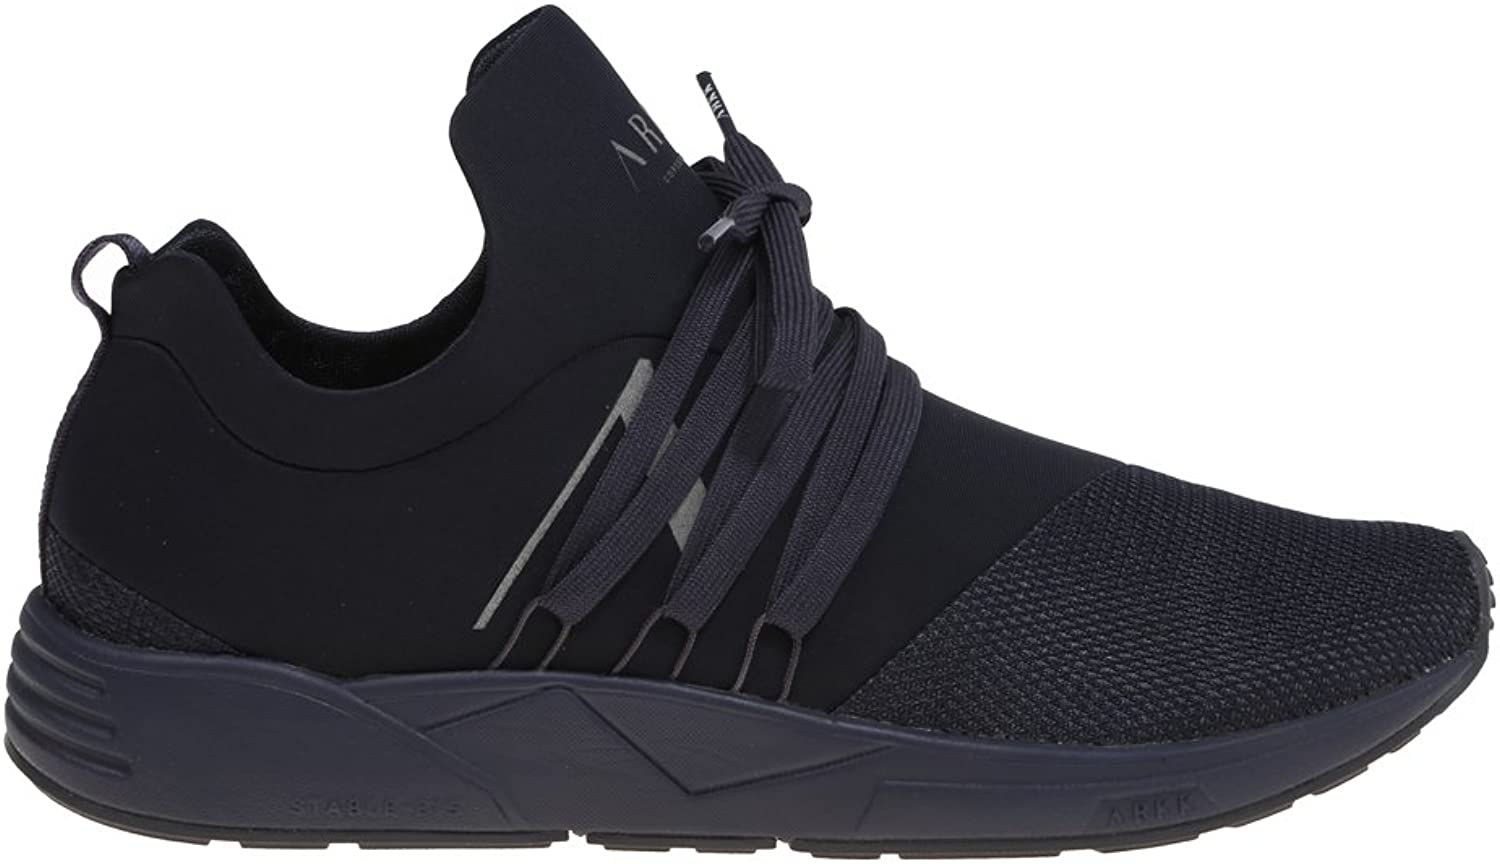 ARK RAVEN MESH Men's Trainers Black Black